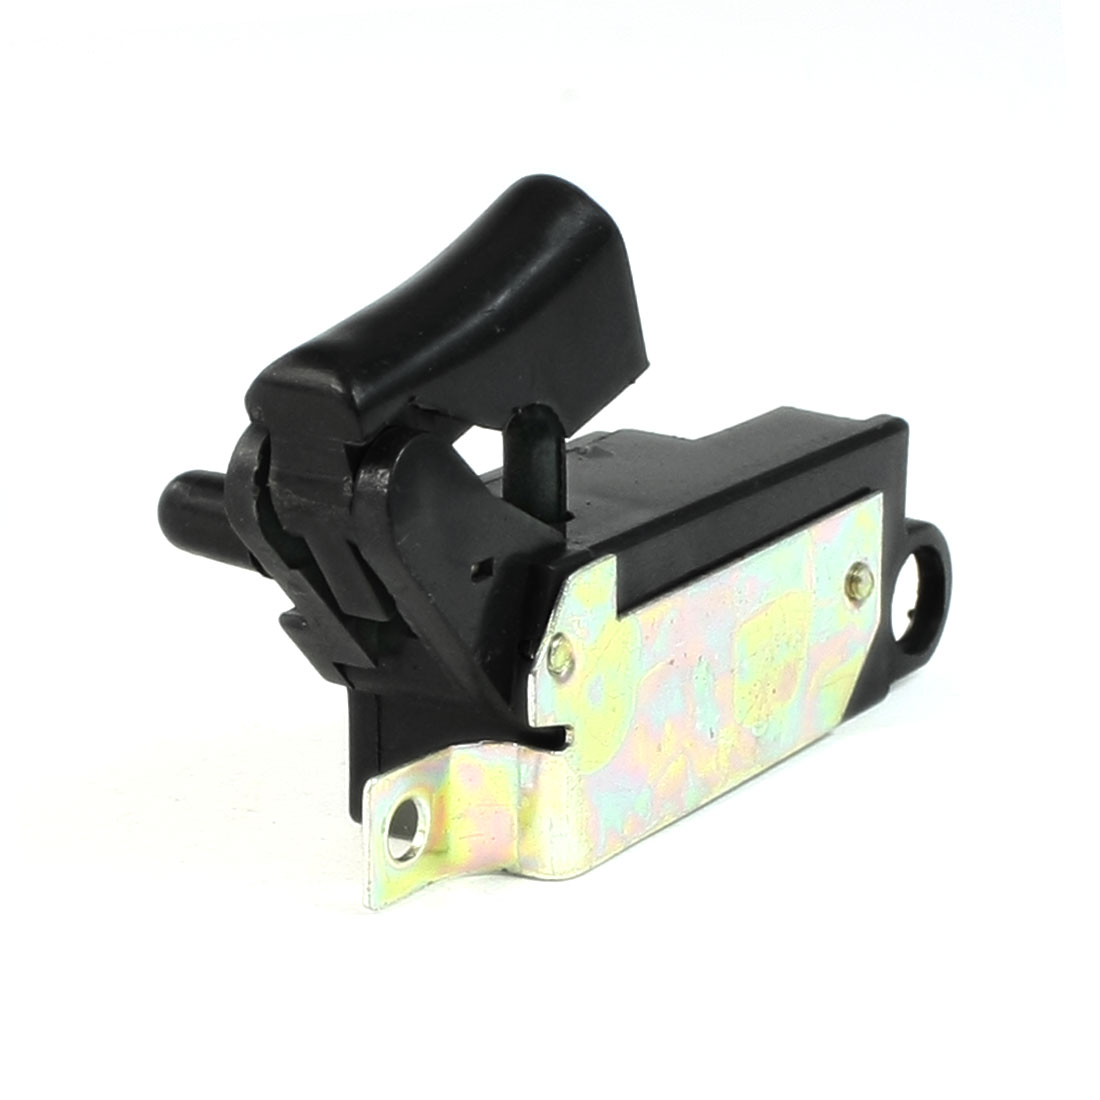 AC 250V 6A DPST NO Lock on Trigger Switch for Hitachi 150 Angle Grinder